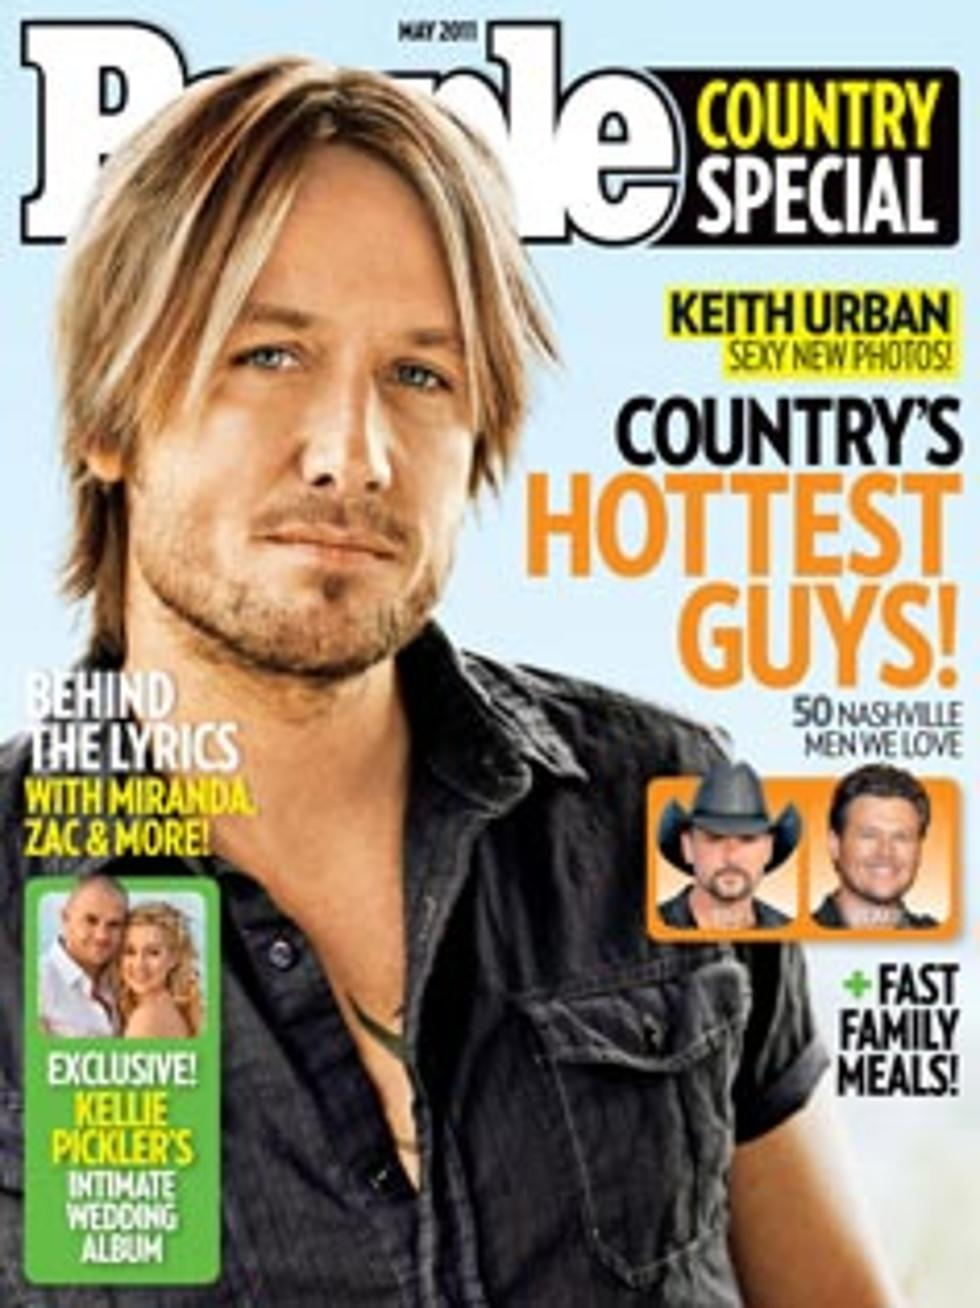 Keith Urban Named Country S Hottest Guy